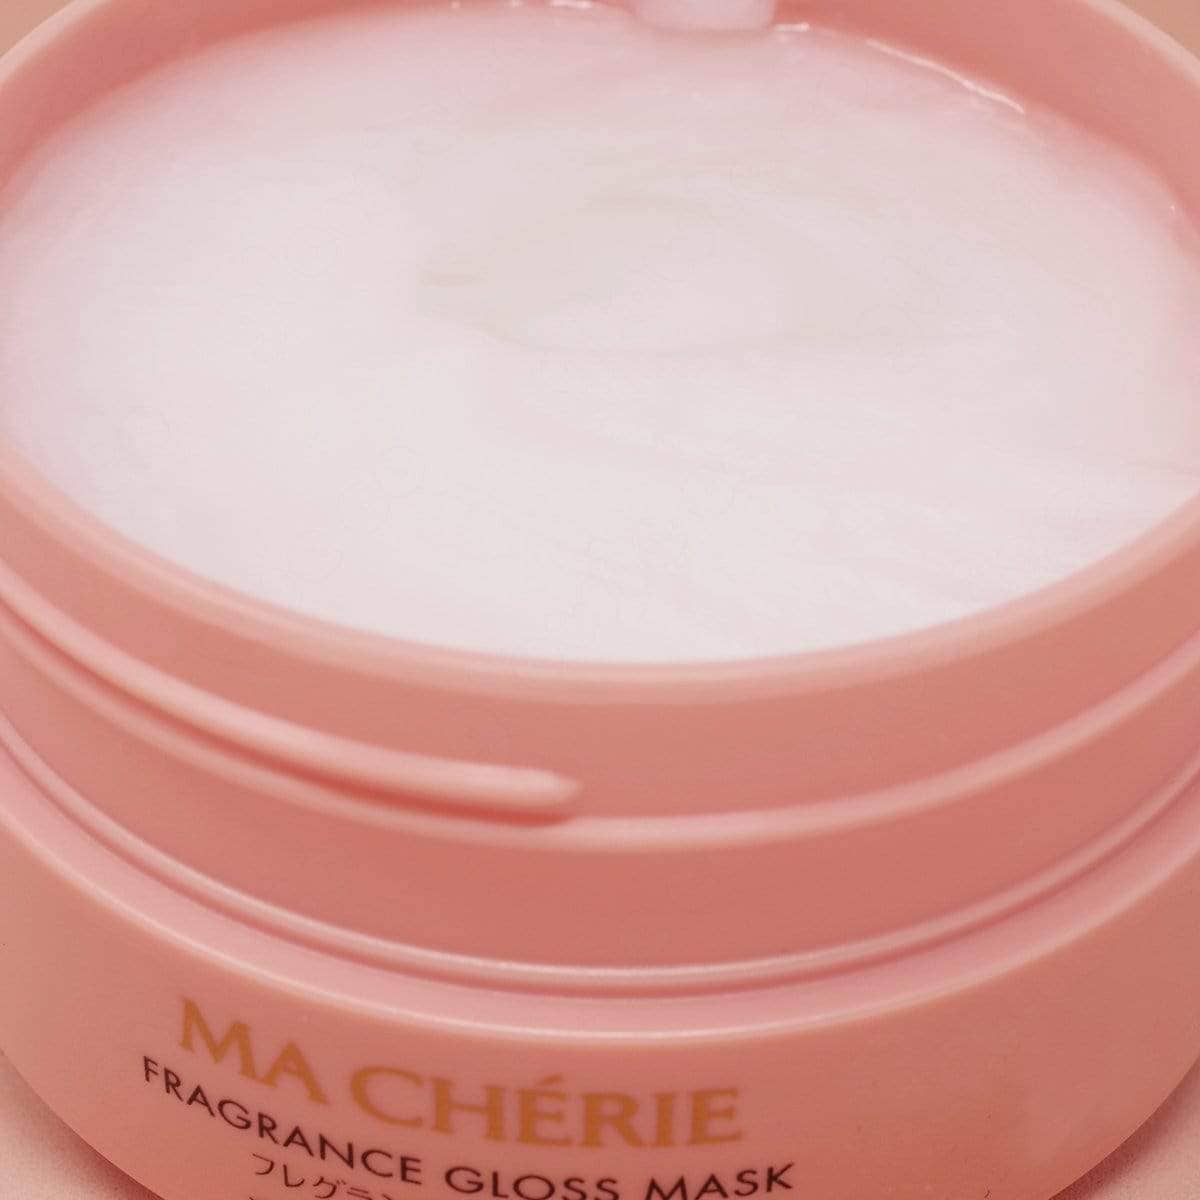 Ma Cherie Treatment Gloss Hair Mask